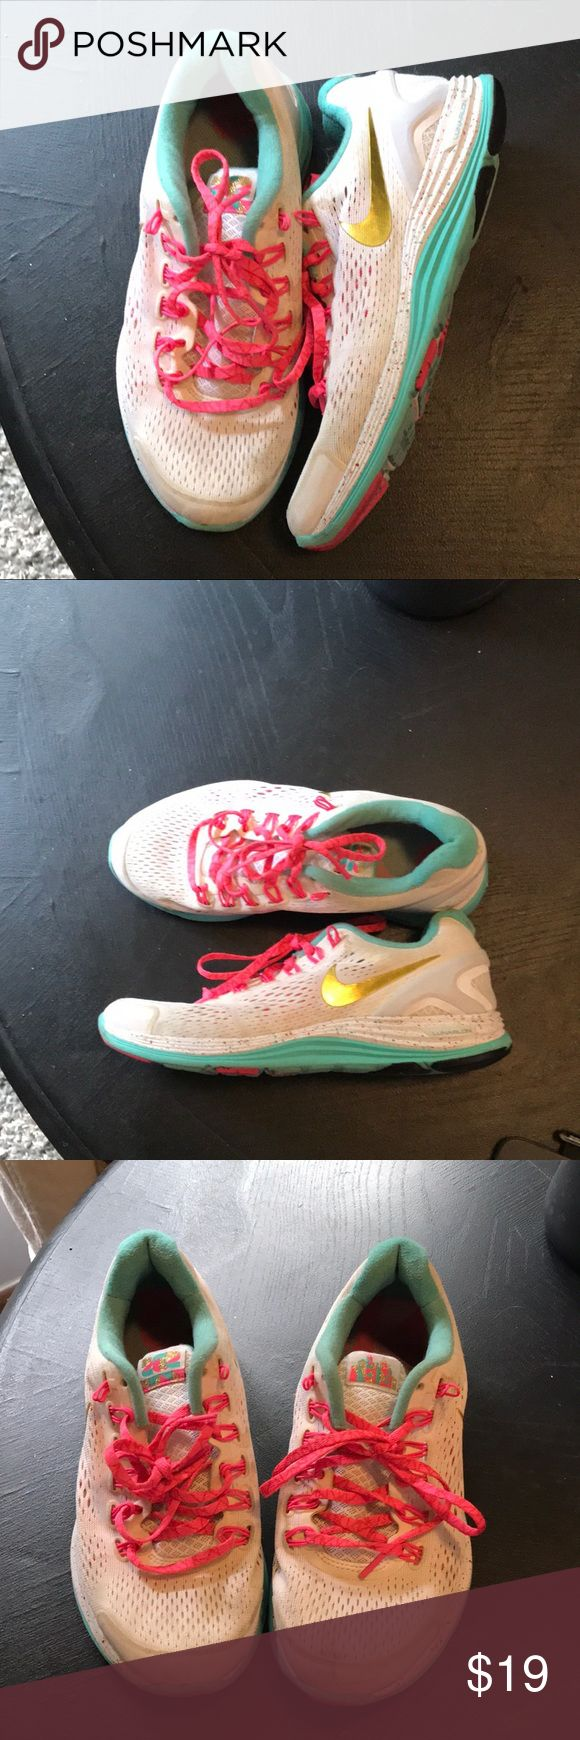 NIKE LUNARGLIDE + 4 CHICAGO MARATHON These limited edition lunar glides are truly one of a kind. Made specifically for the Chicago marathon, these shoes are fun. Starting with the fun color scheme, the funfetti teals, golds and pinks go nicely with the white. Two icons cover the tongues of these shoes. While these shoes aren't in pristine condition they are still perfect for kicking it or bopping about town. Nike Shoes Sneakers